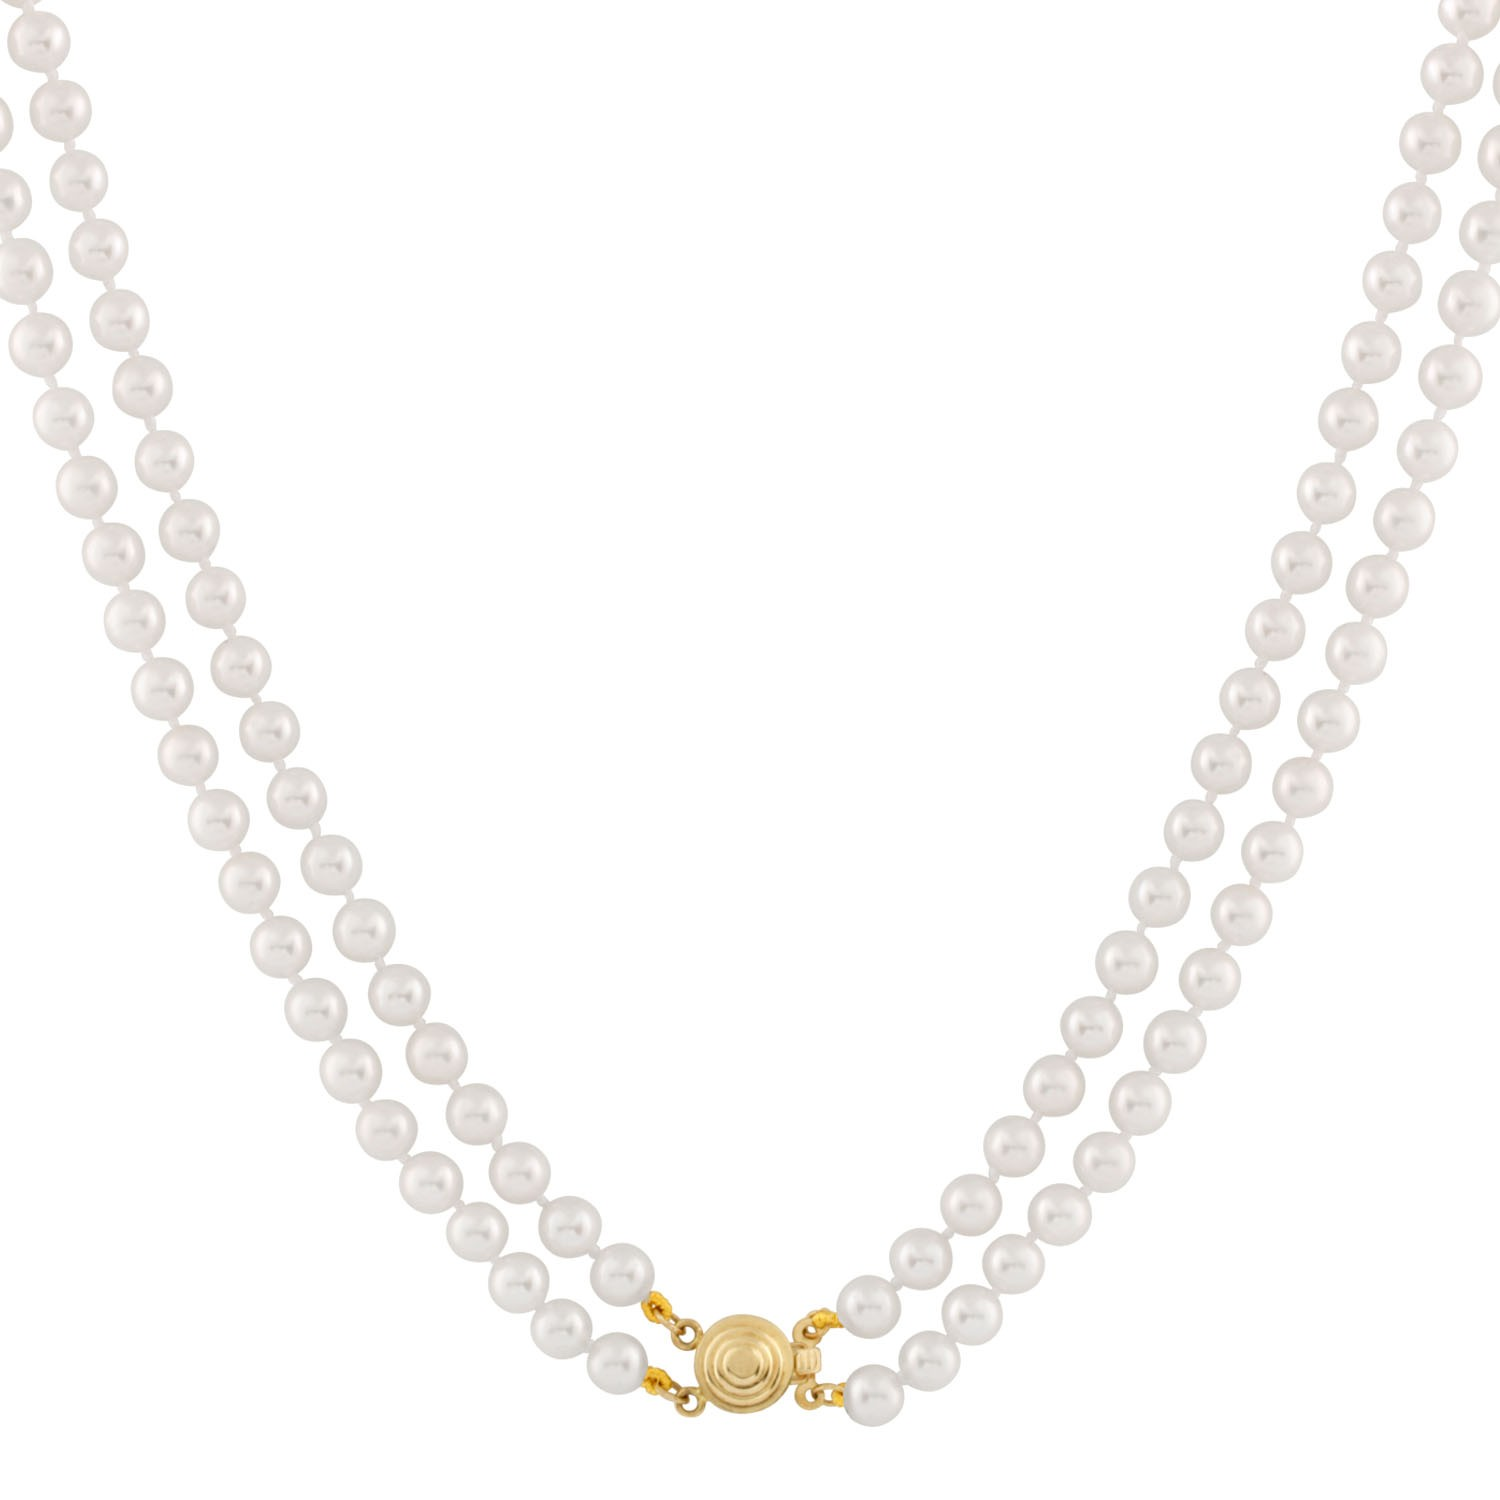 inch necklace types product davonna watches overstock gold black shipping pearls today pearl white jewelry mm free tahitian